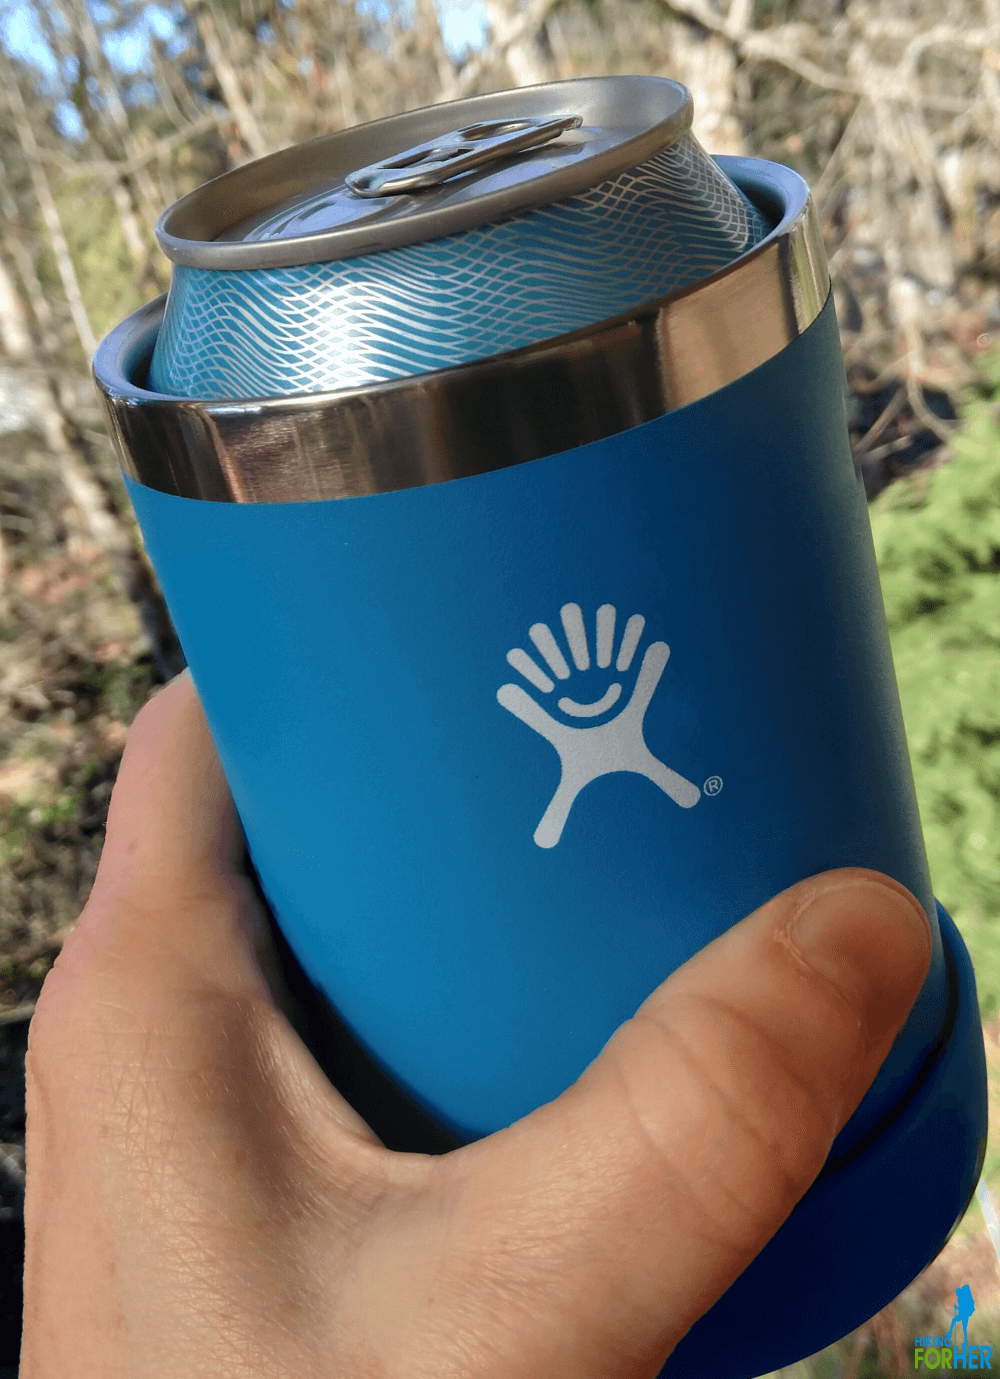 Hand holding a blue Hydroflask Cooler Cup, which in turn is holding a beverage can